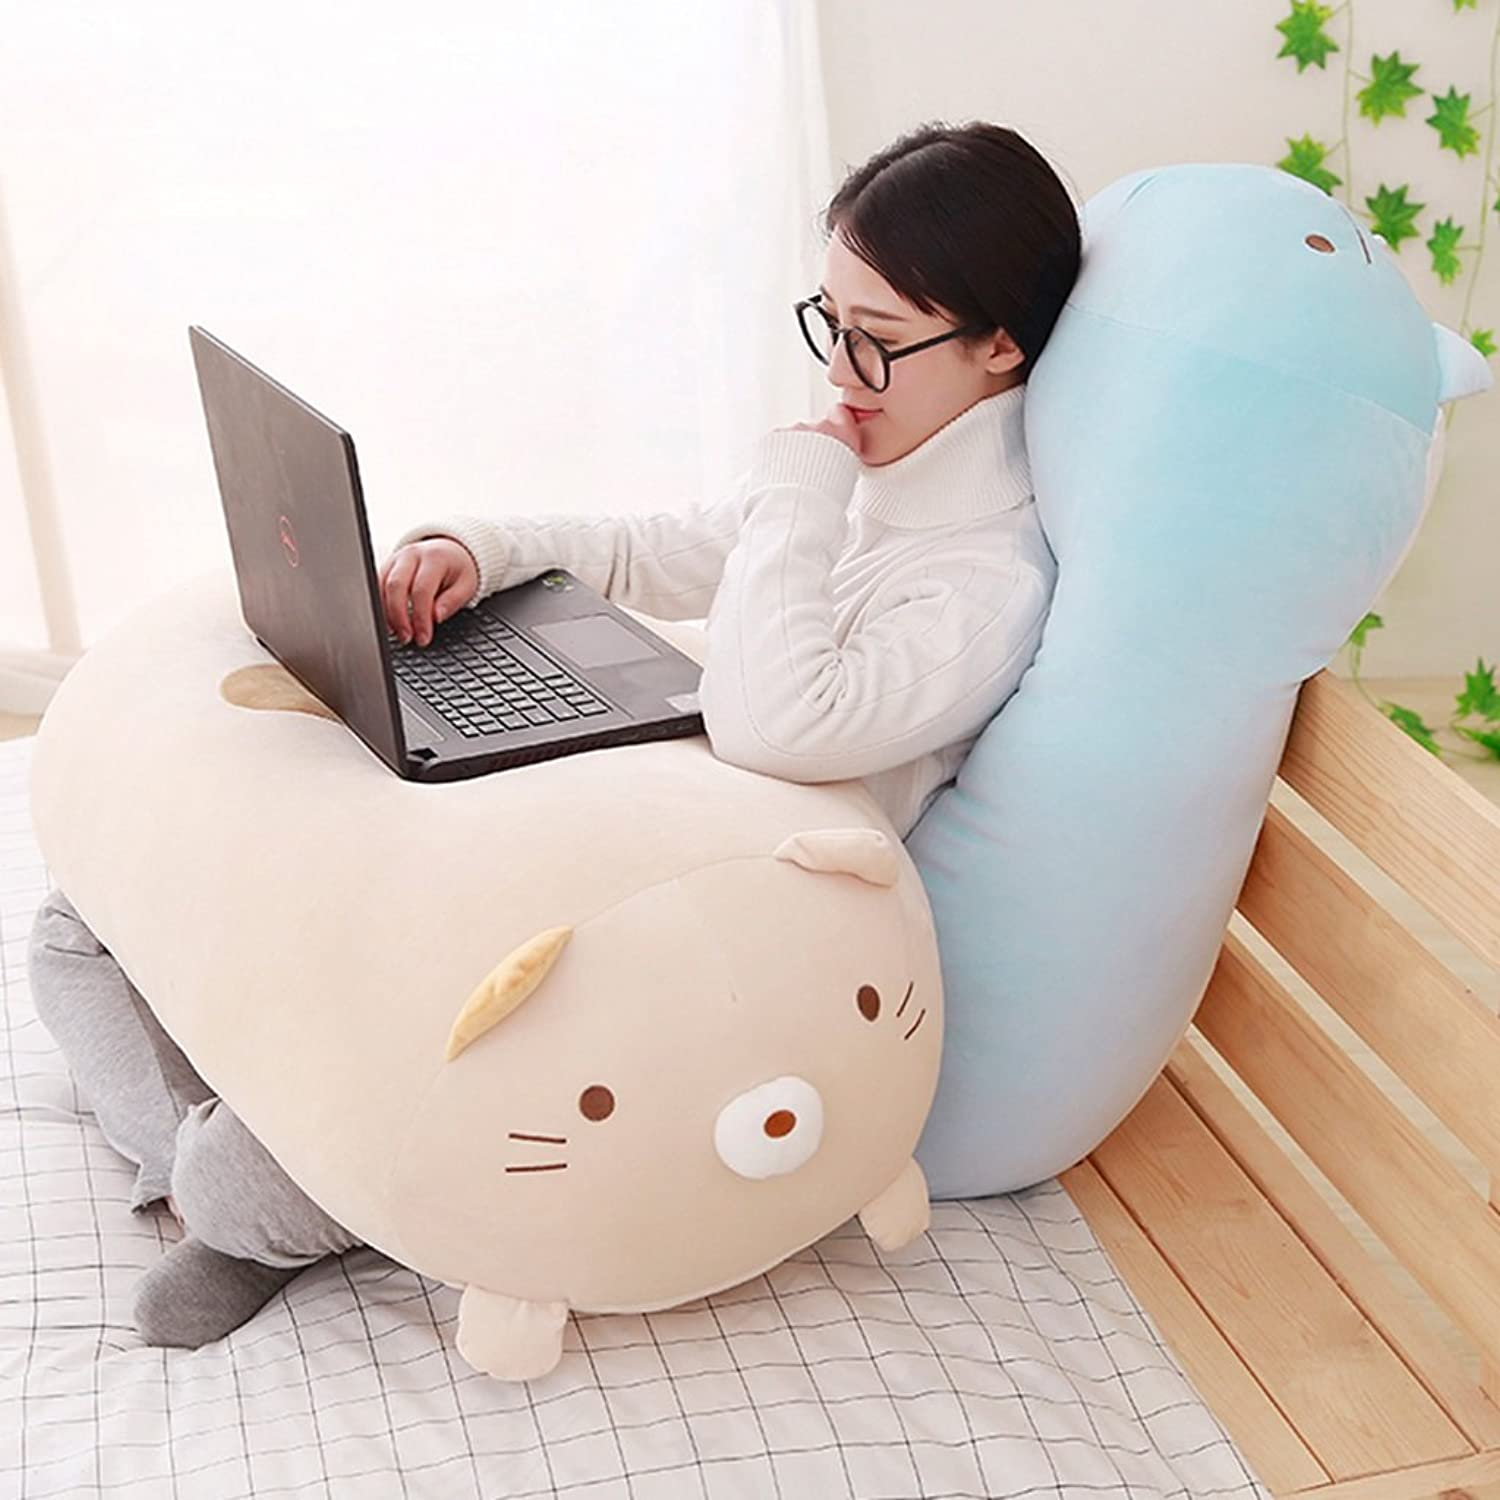 Cute Corner Creatures, Plush Toys, Sleeping Pillows, Office Pillows, Pillow Doll Dolls, Holiday Gifts, 60cm, 90cm. ( Size   Cream 60cm )